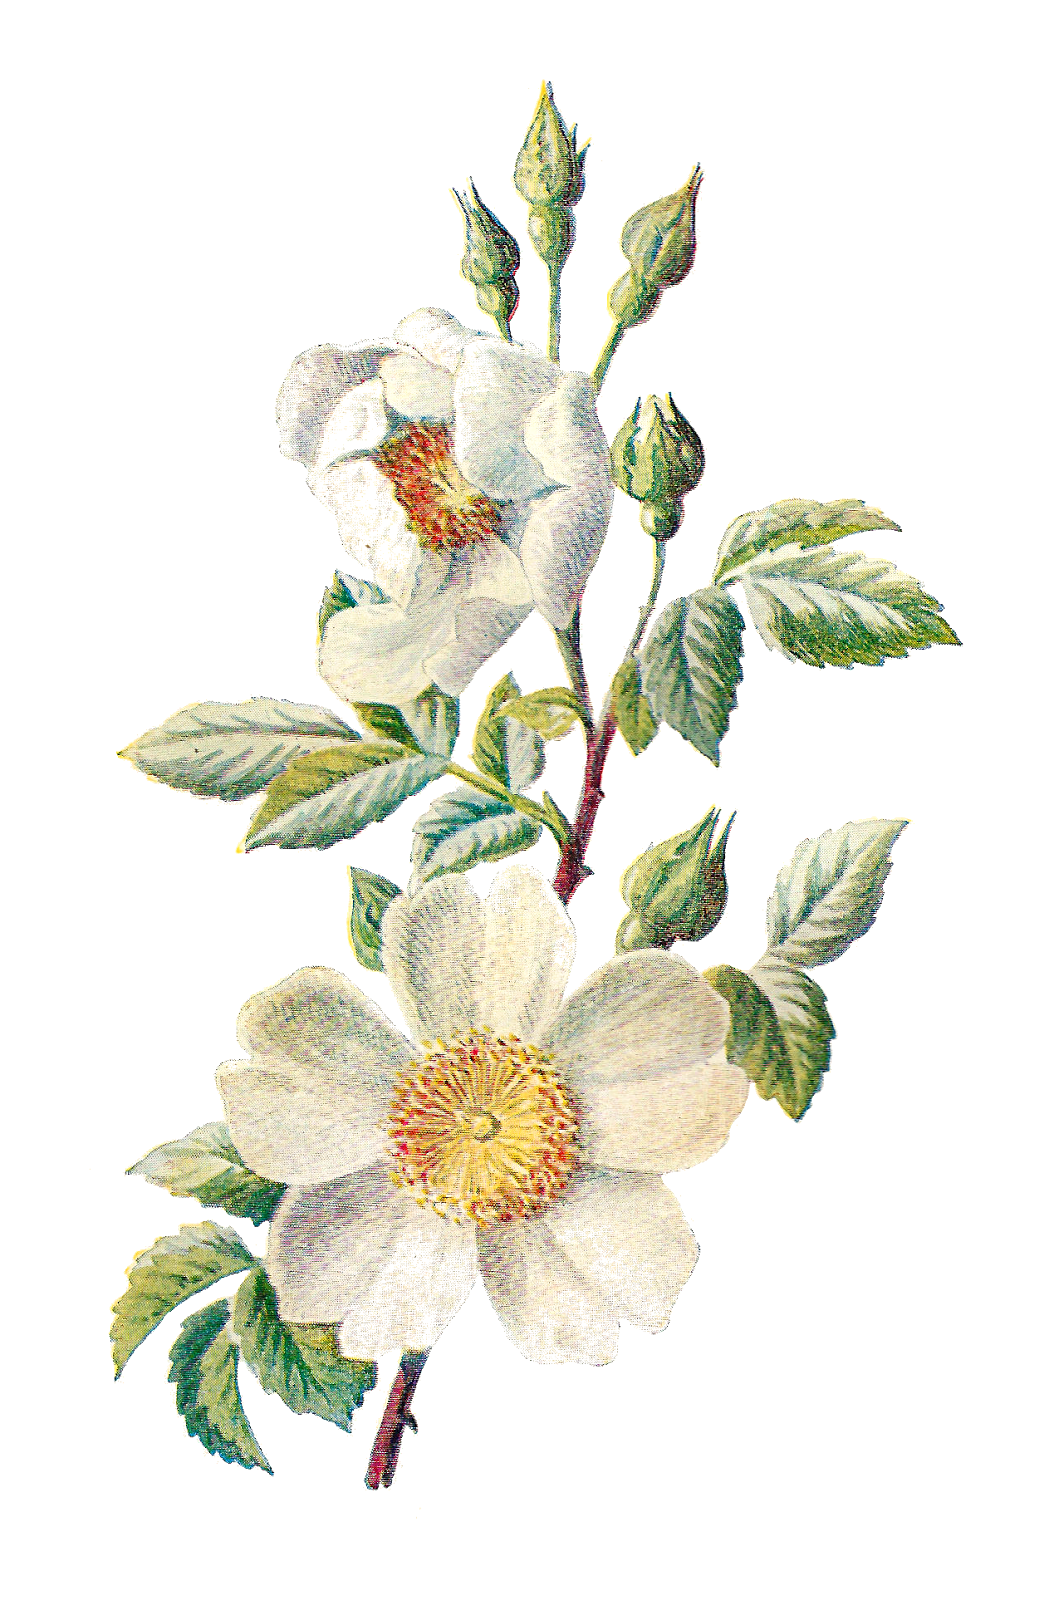 Antique images stock botanical. Field clipart field wildflower